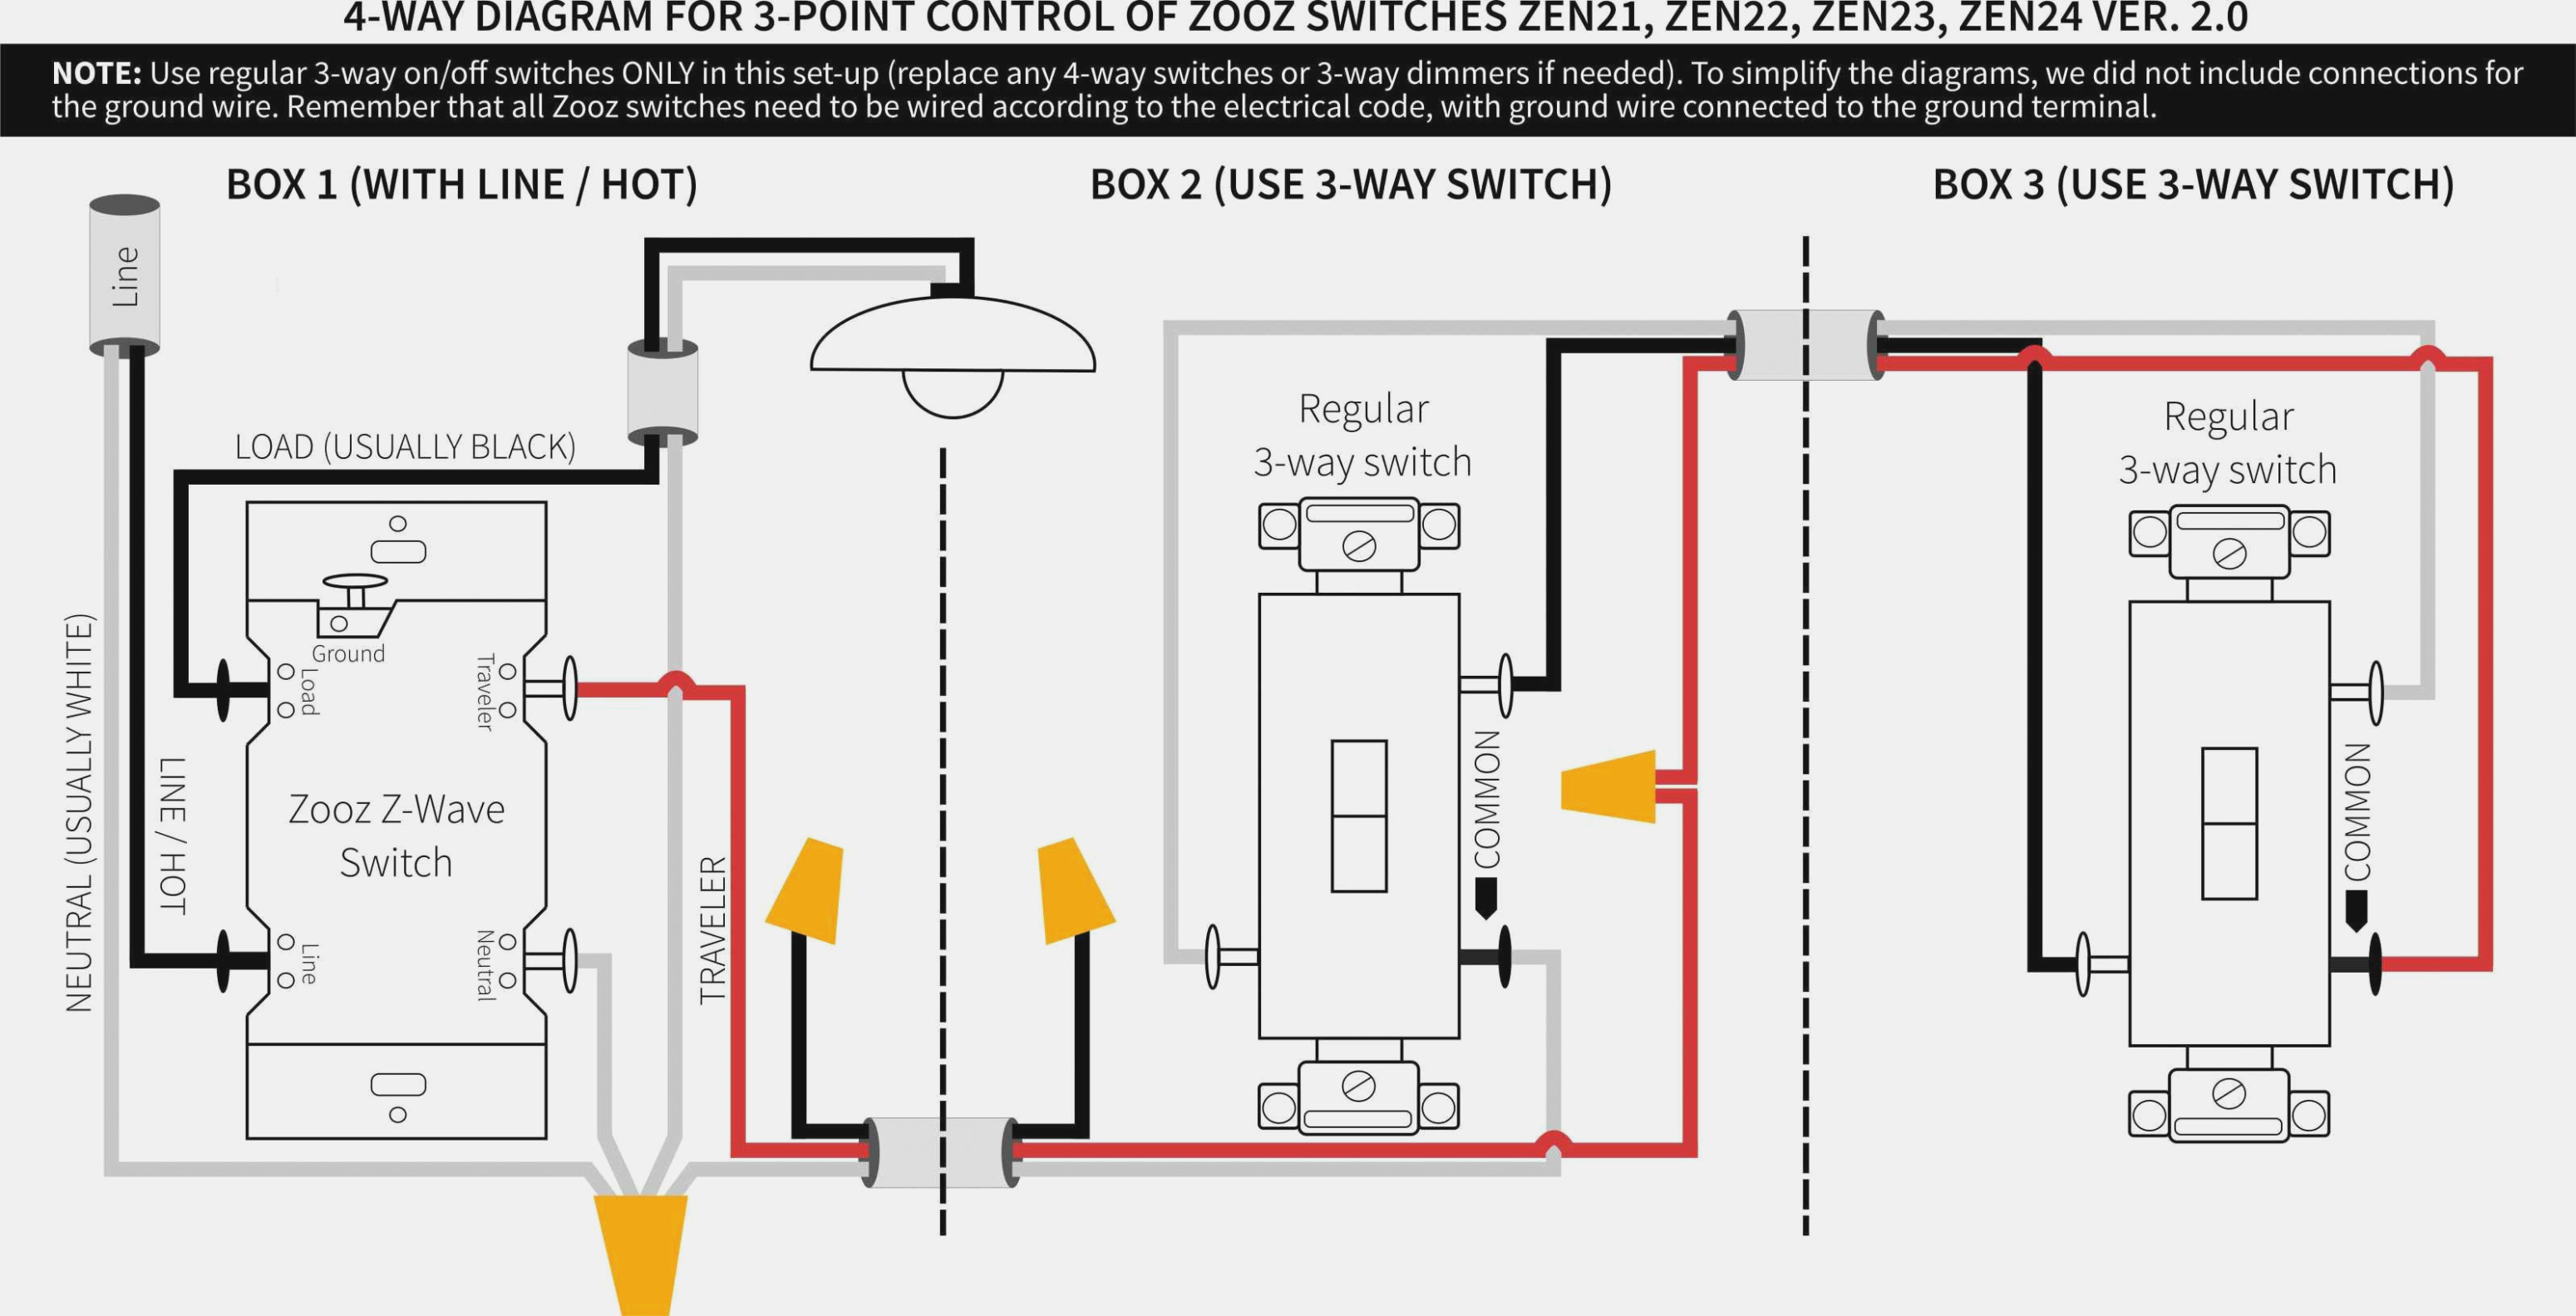 Lutron Three Way Dimmer Switch Wiring Diagram | Wiring Library - 3 Way Dimmer Switches Wiring Diagram